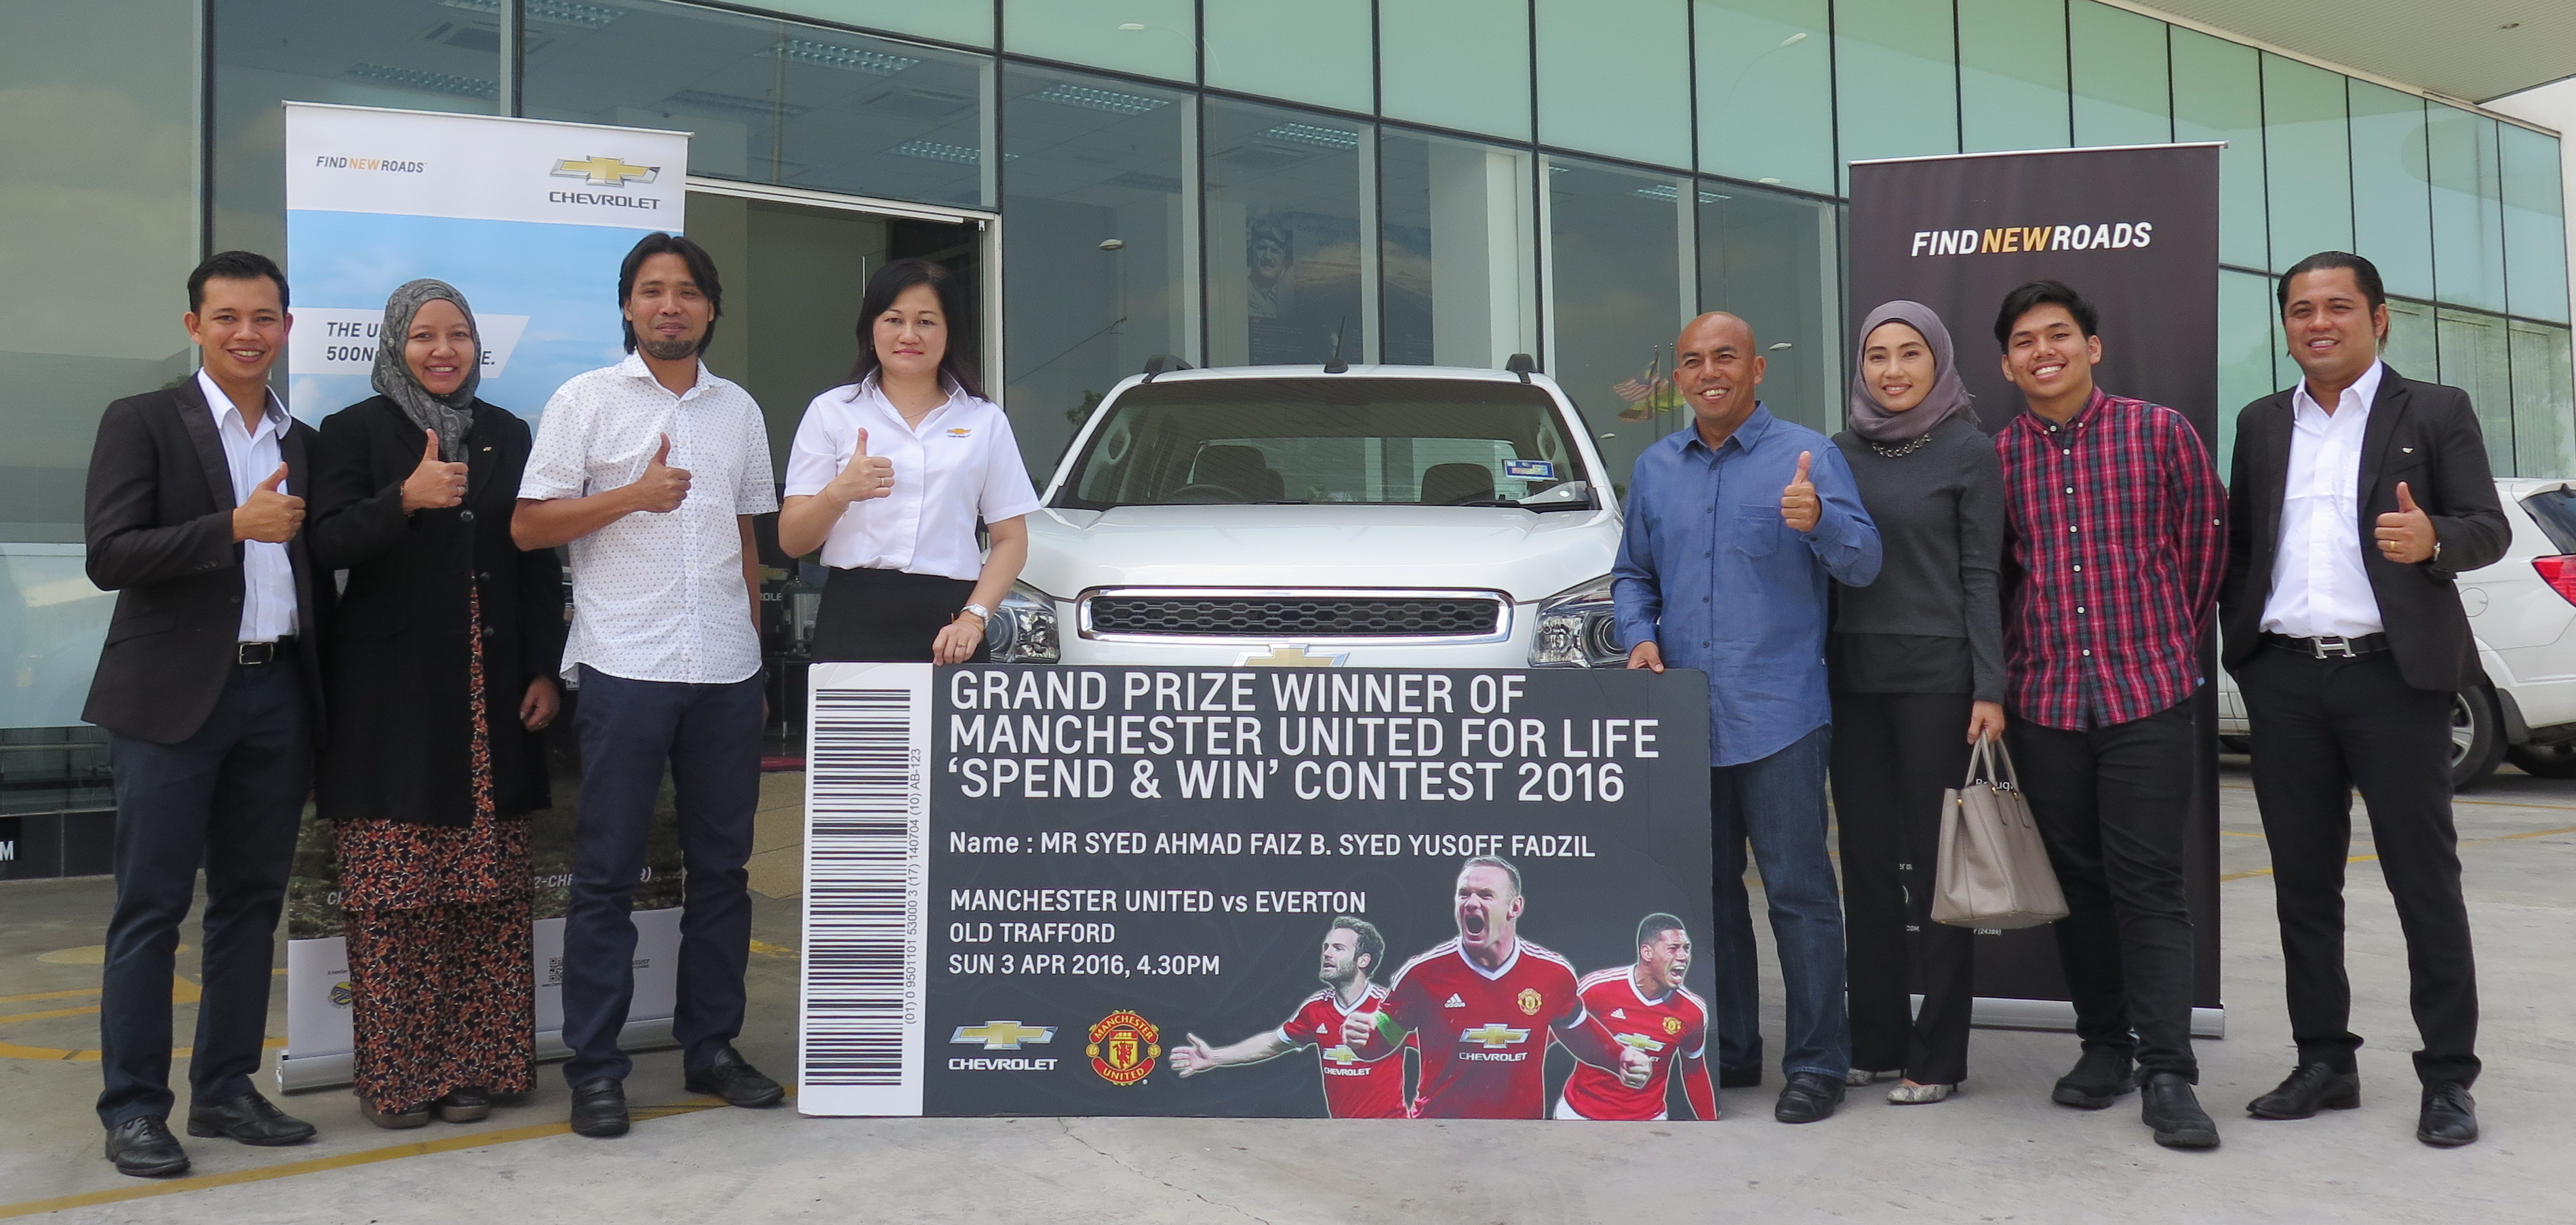 Chevrolet Man United for Life winner announced